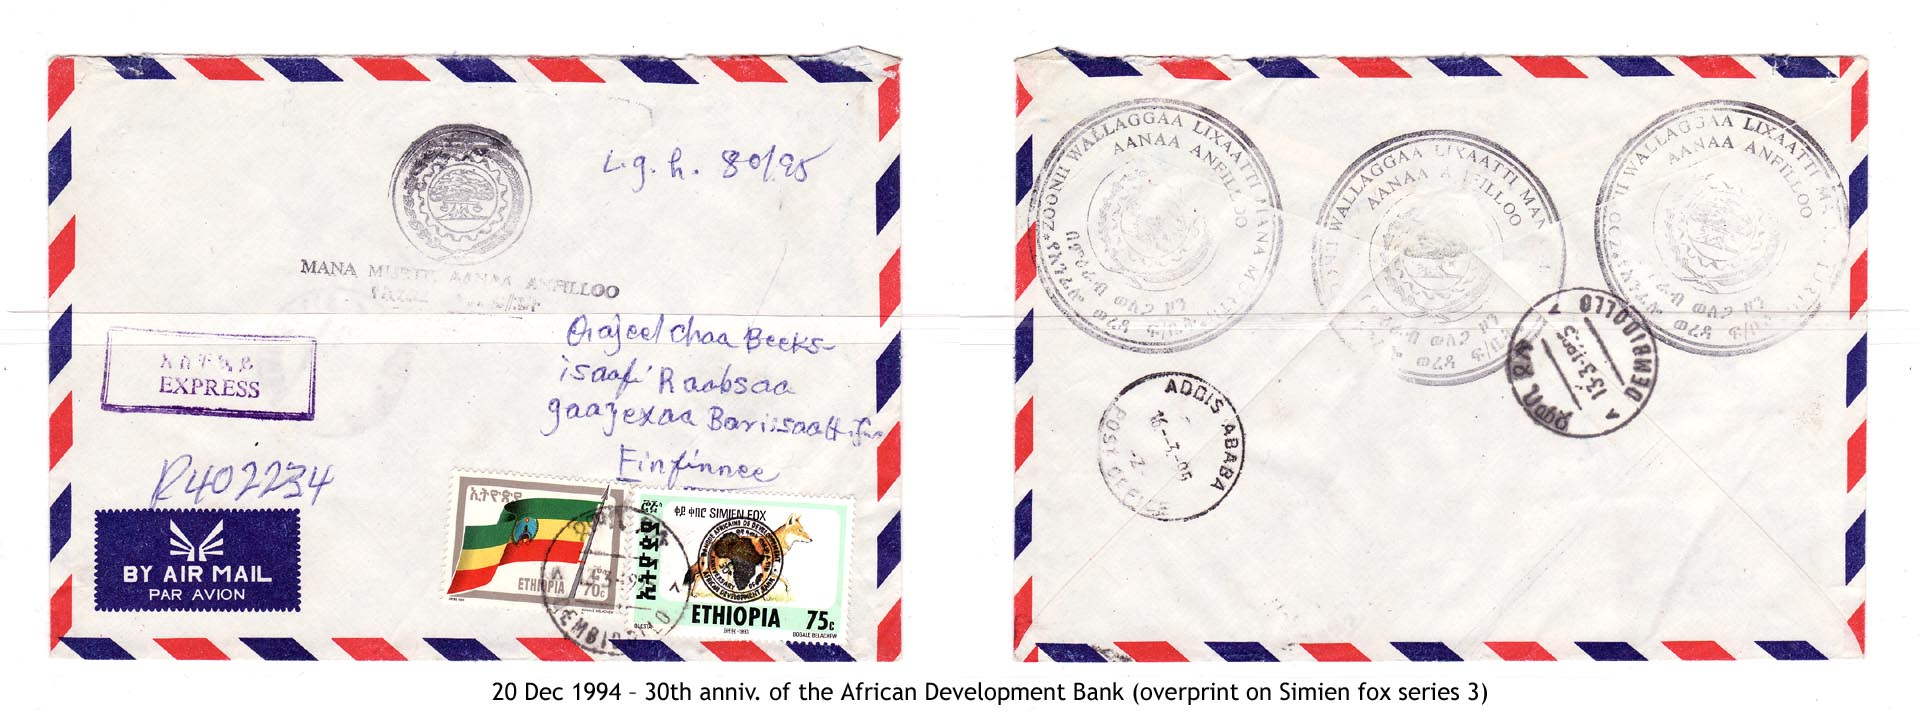 19941220 – 30th anniv. of the African Development Bank (overprint on Simien fox series 3)